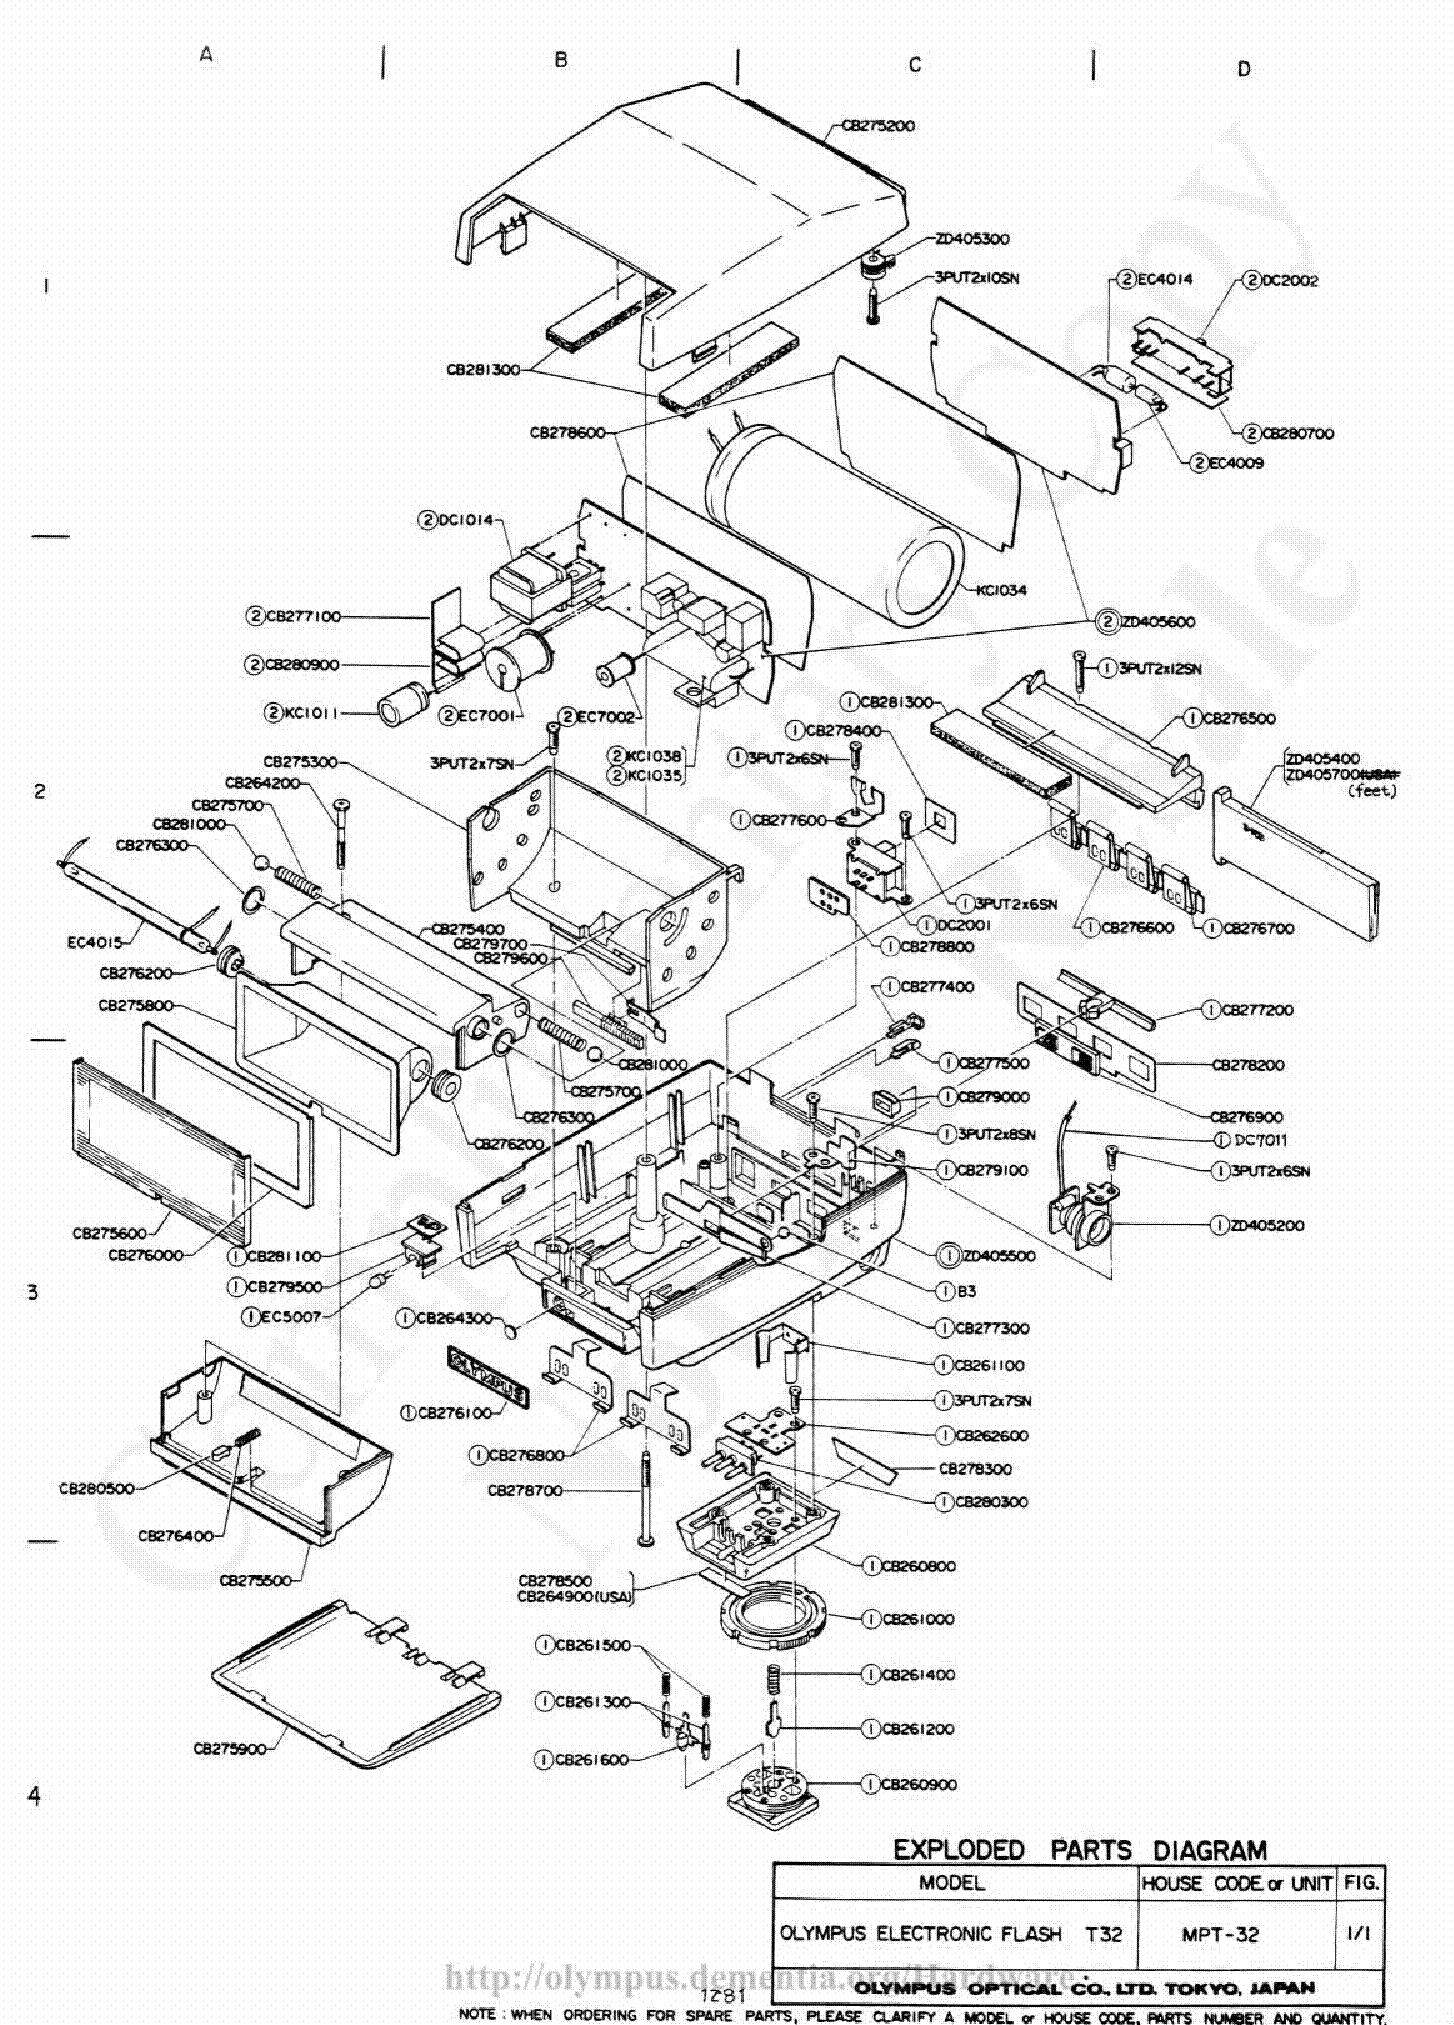 OLYMPUS T32 EXPLODED PARTS    DIAGRAM    Service Manual download     schematics     eeprom  repair info for